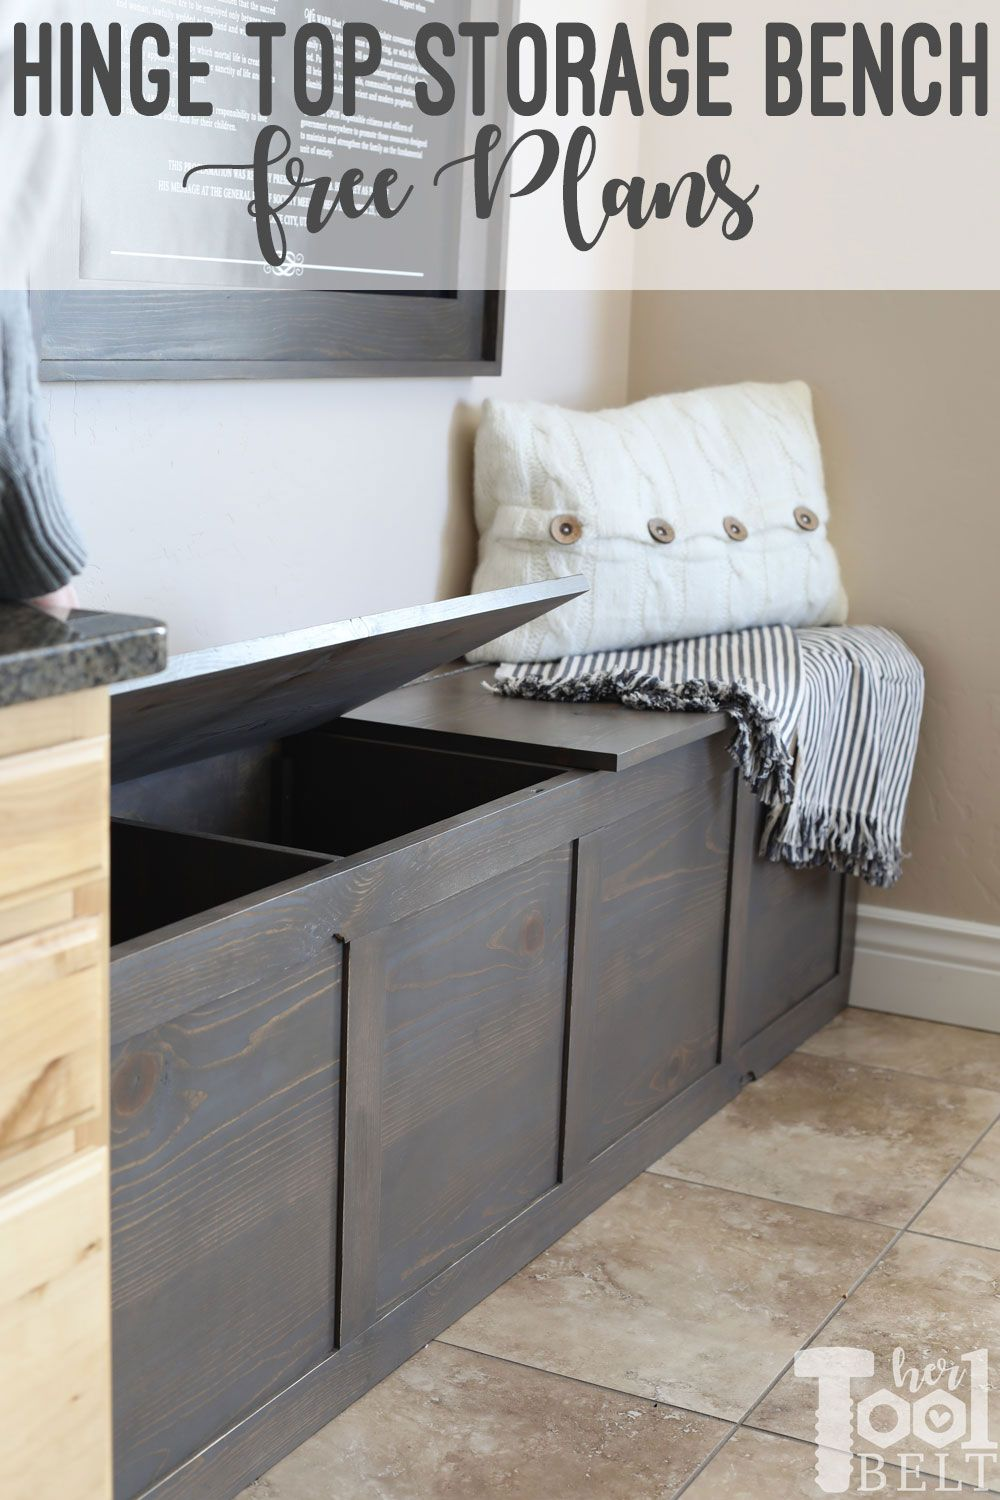 Backpack Storage Bench Plans - Her Tool Belt  Diy storage bench